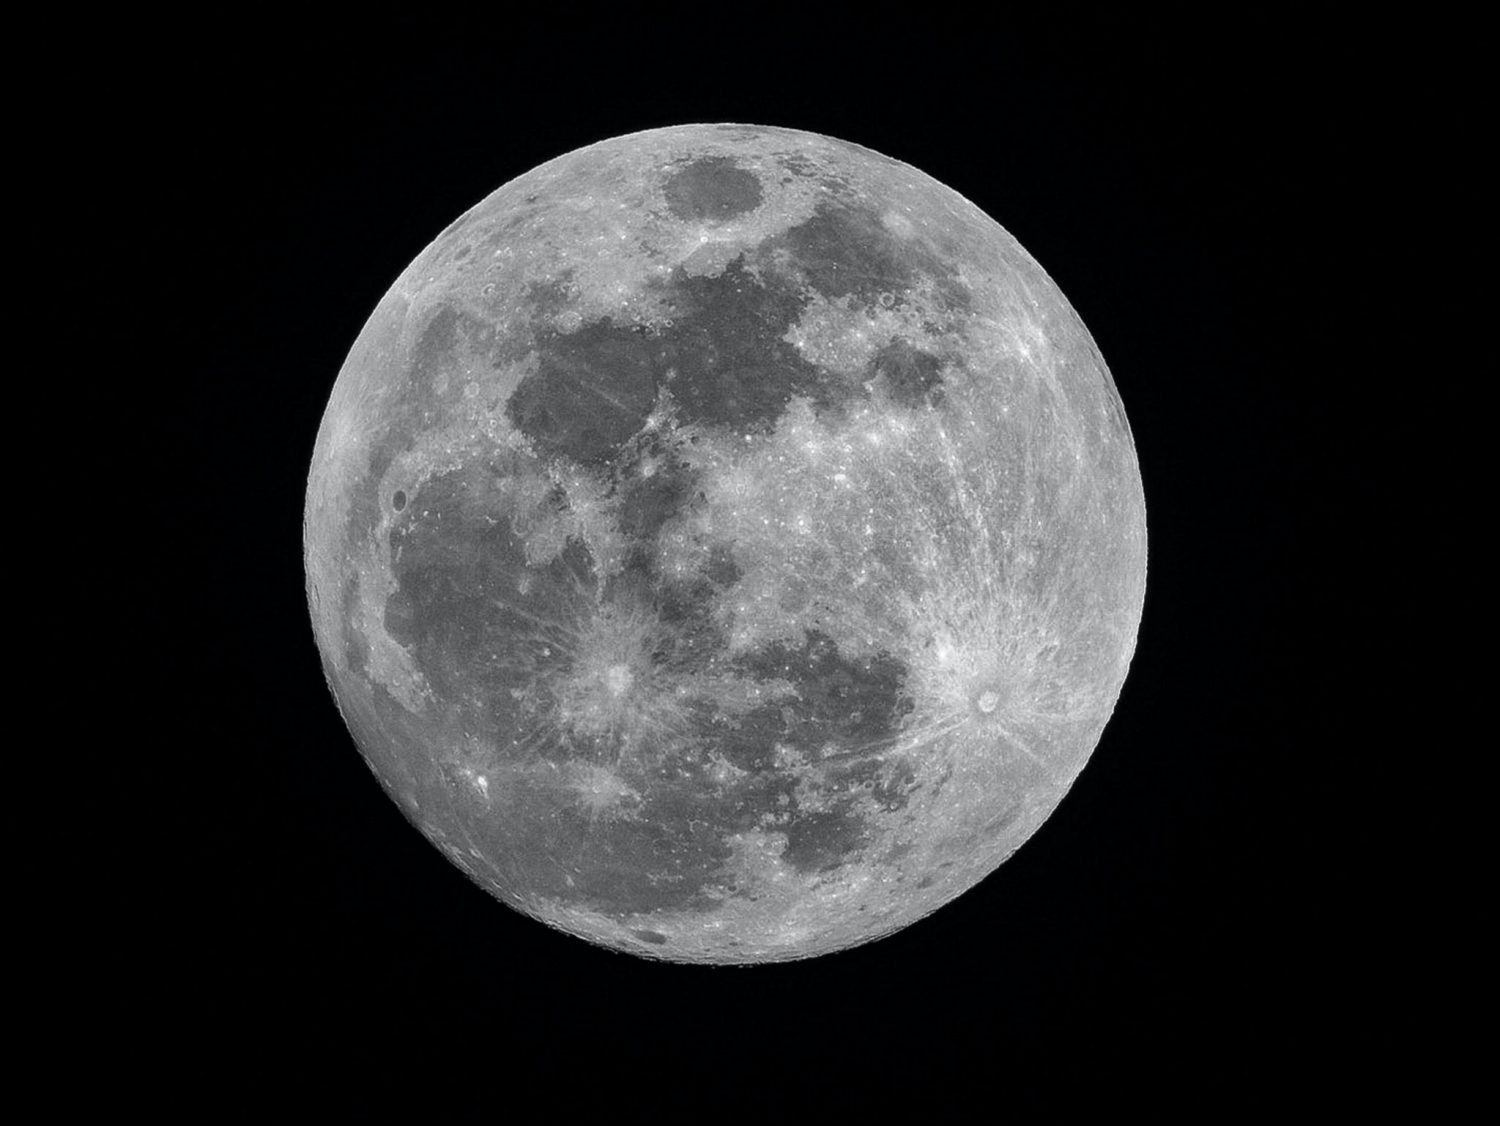 are you a 'look at the moon' person?